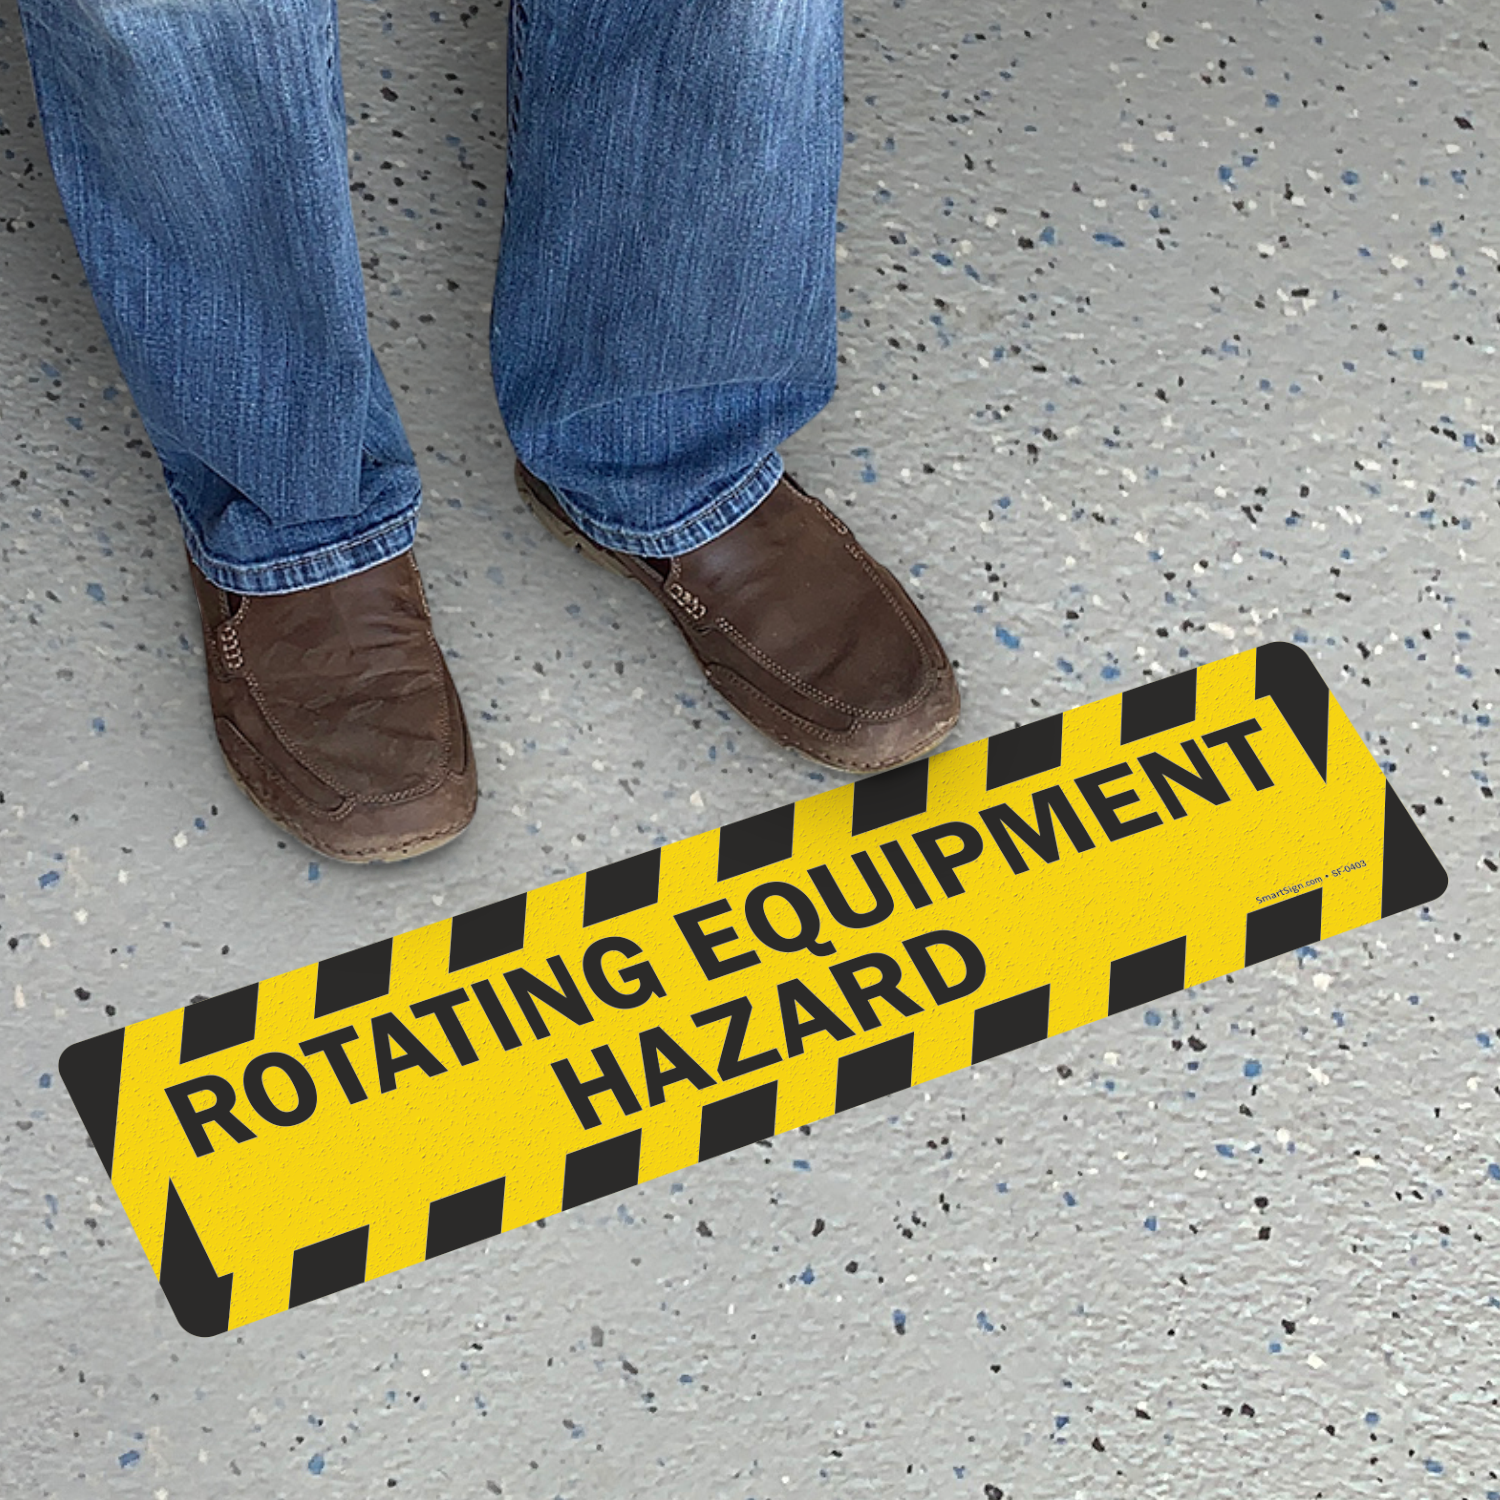 Rotating Equipment Hazard Slip-Resistant Sign